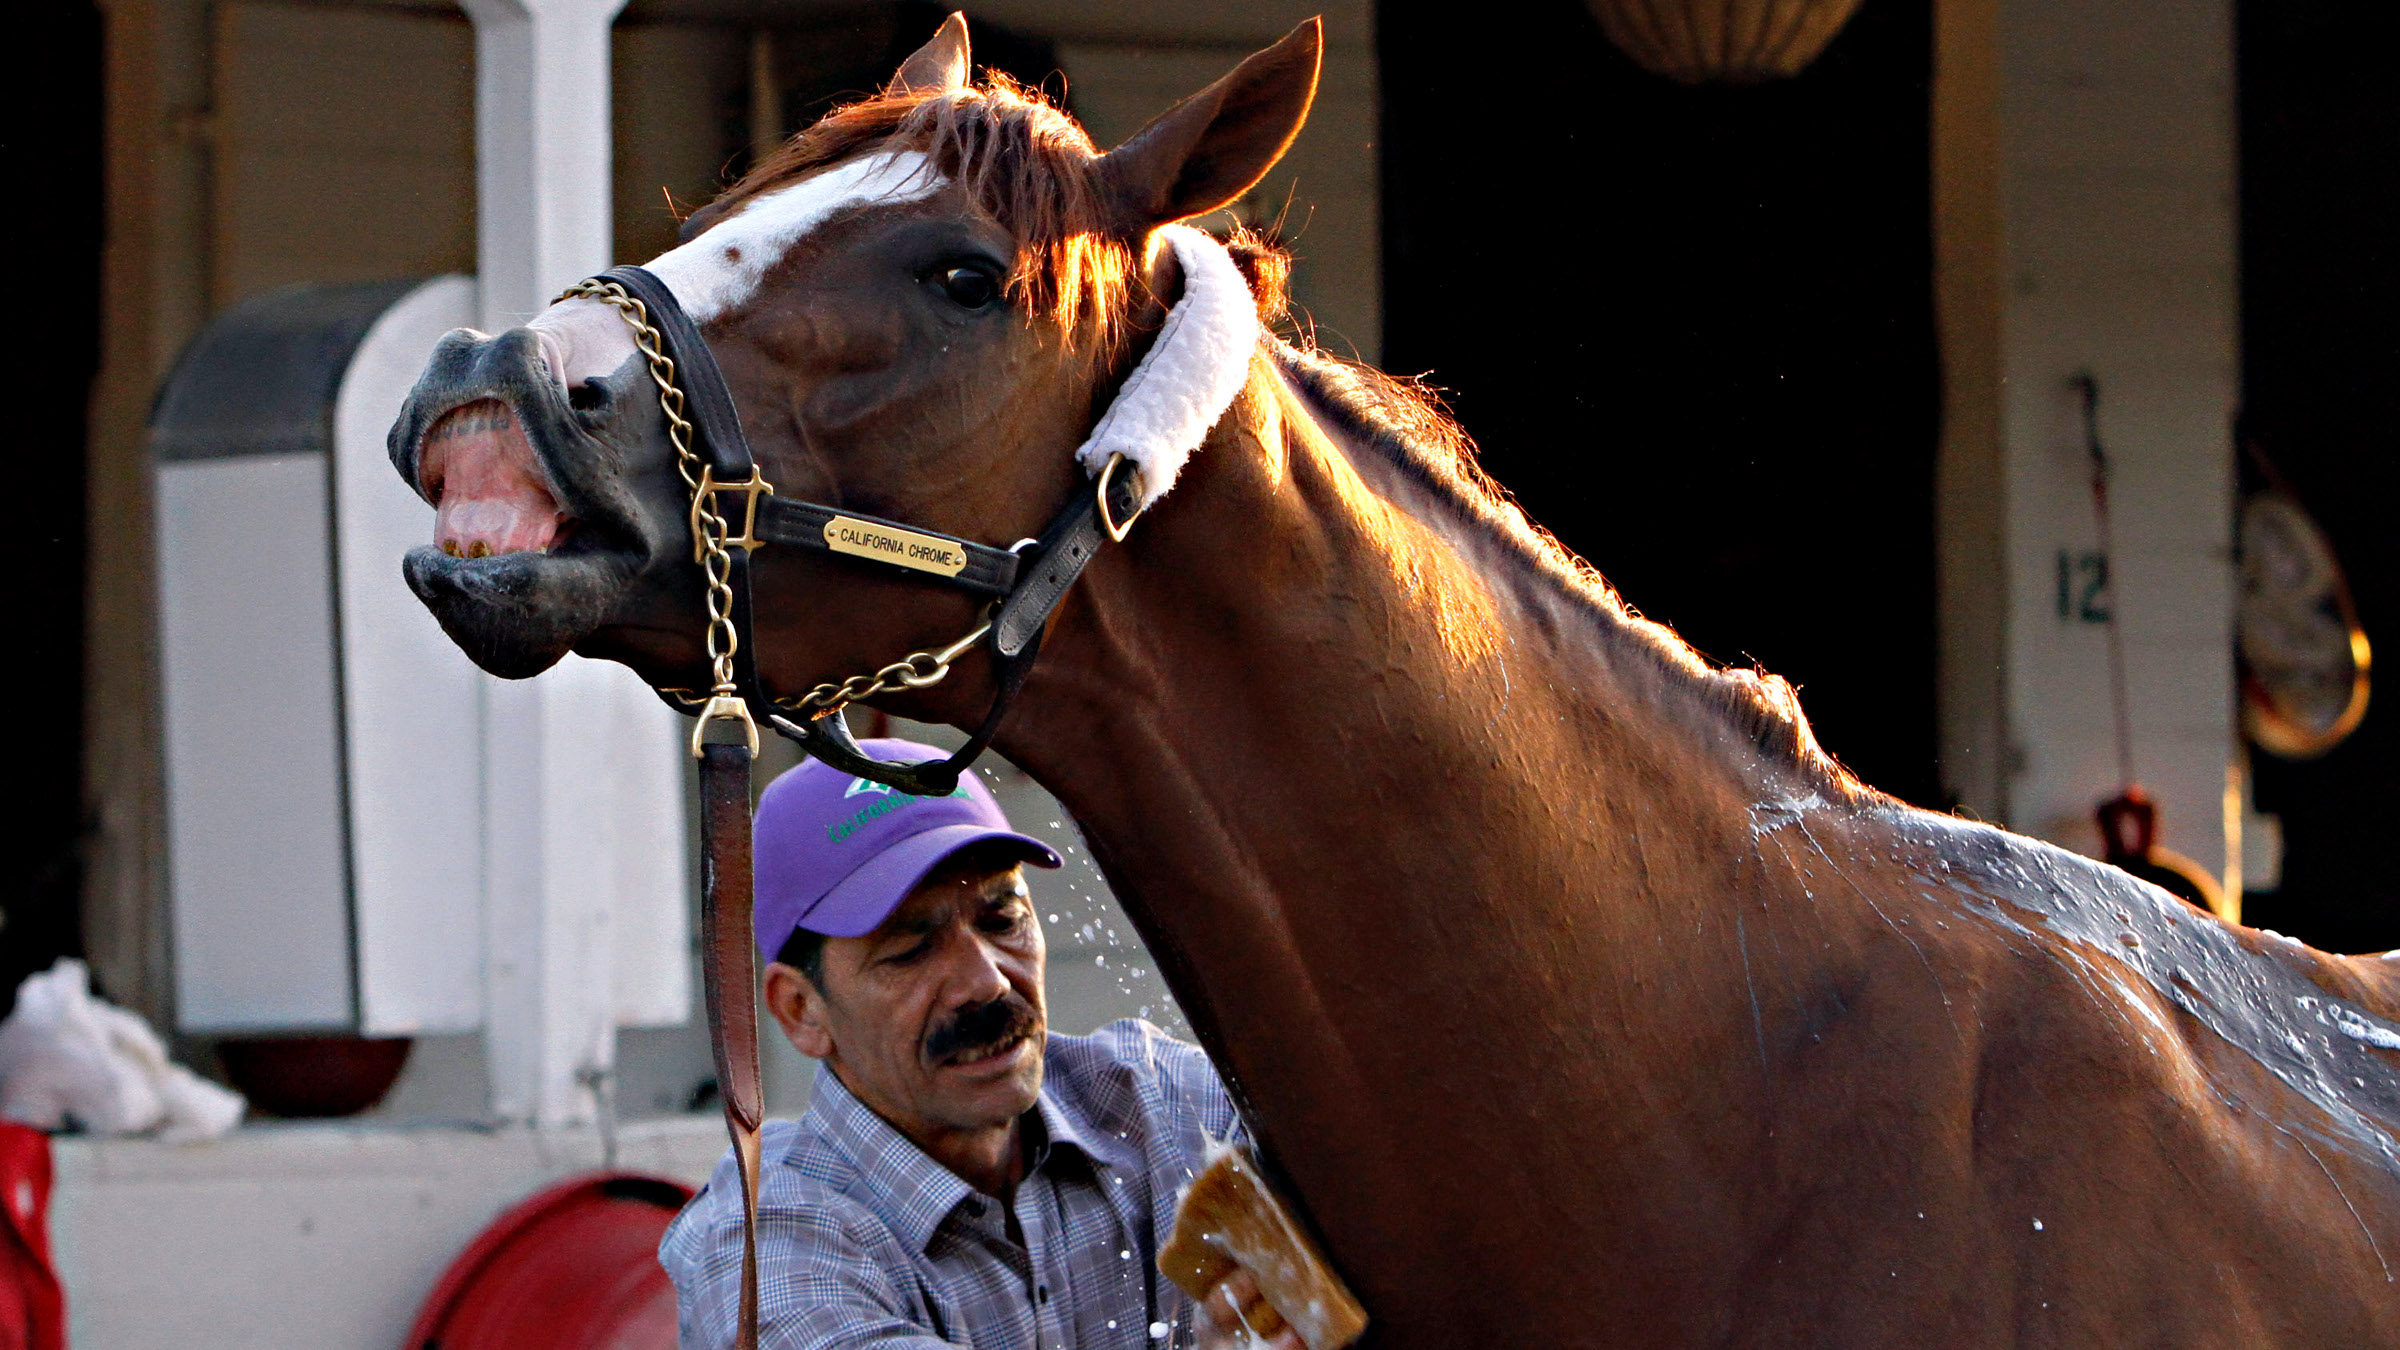 Kentucky Derby winner California Chrome reacts as groomer Raul Rodriguez gives him a bath after a jog on the track at Churchill Downs in Louisville, Ky., Wednesday, May 7, 2014.